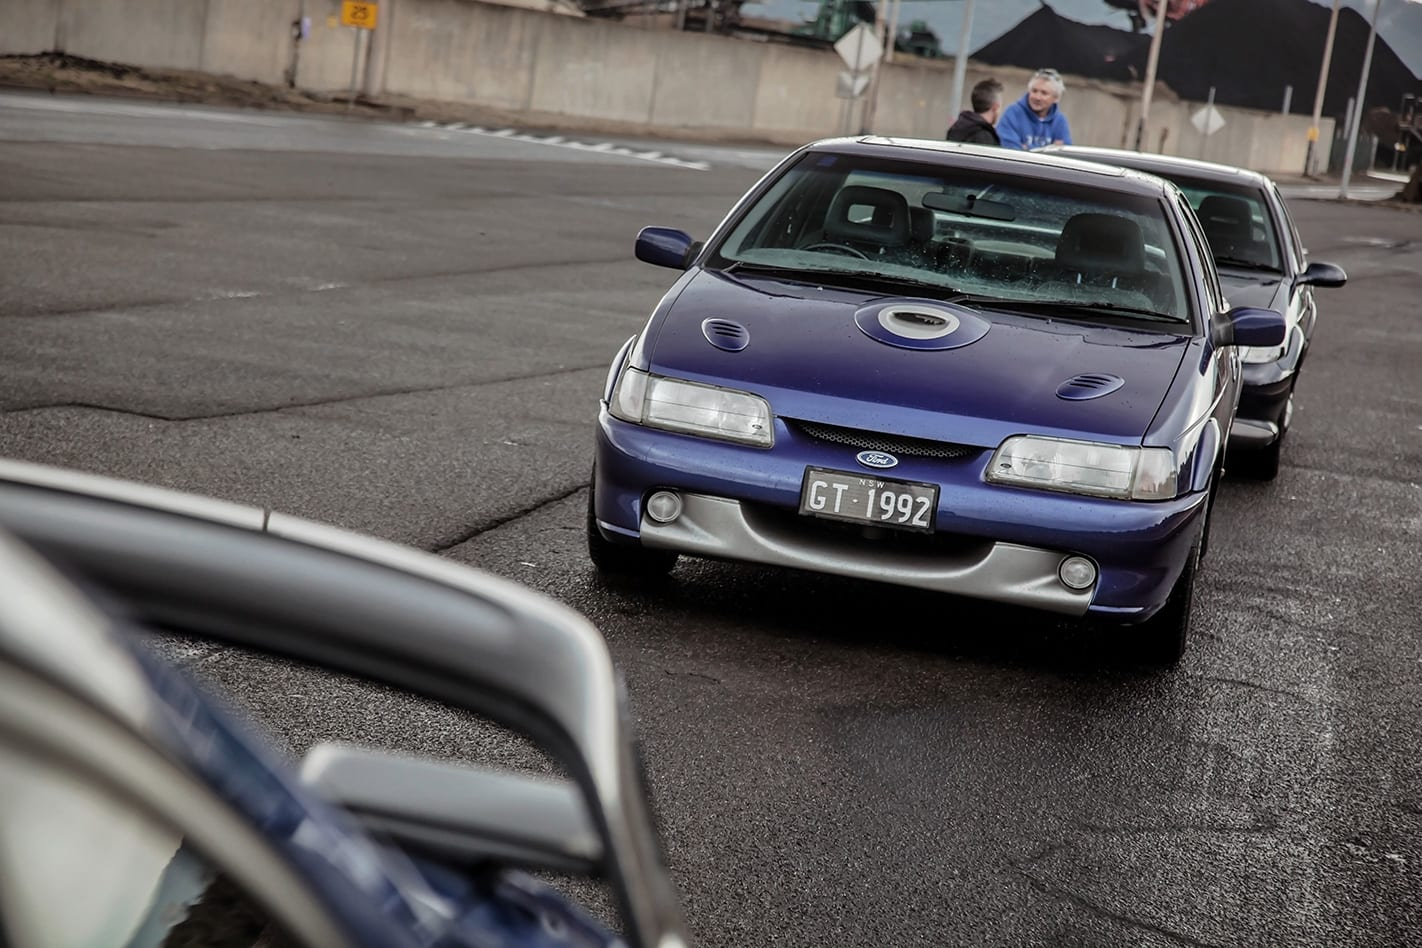 1993 EB II Ford Falcon GT front facing.jpg